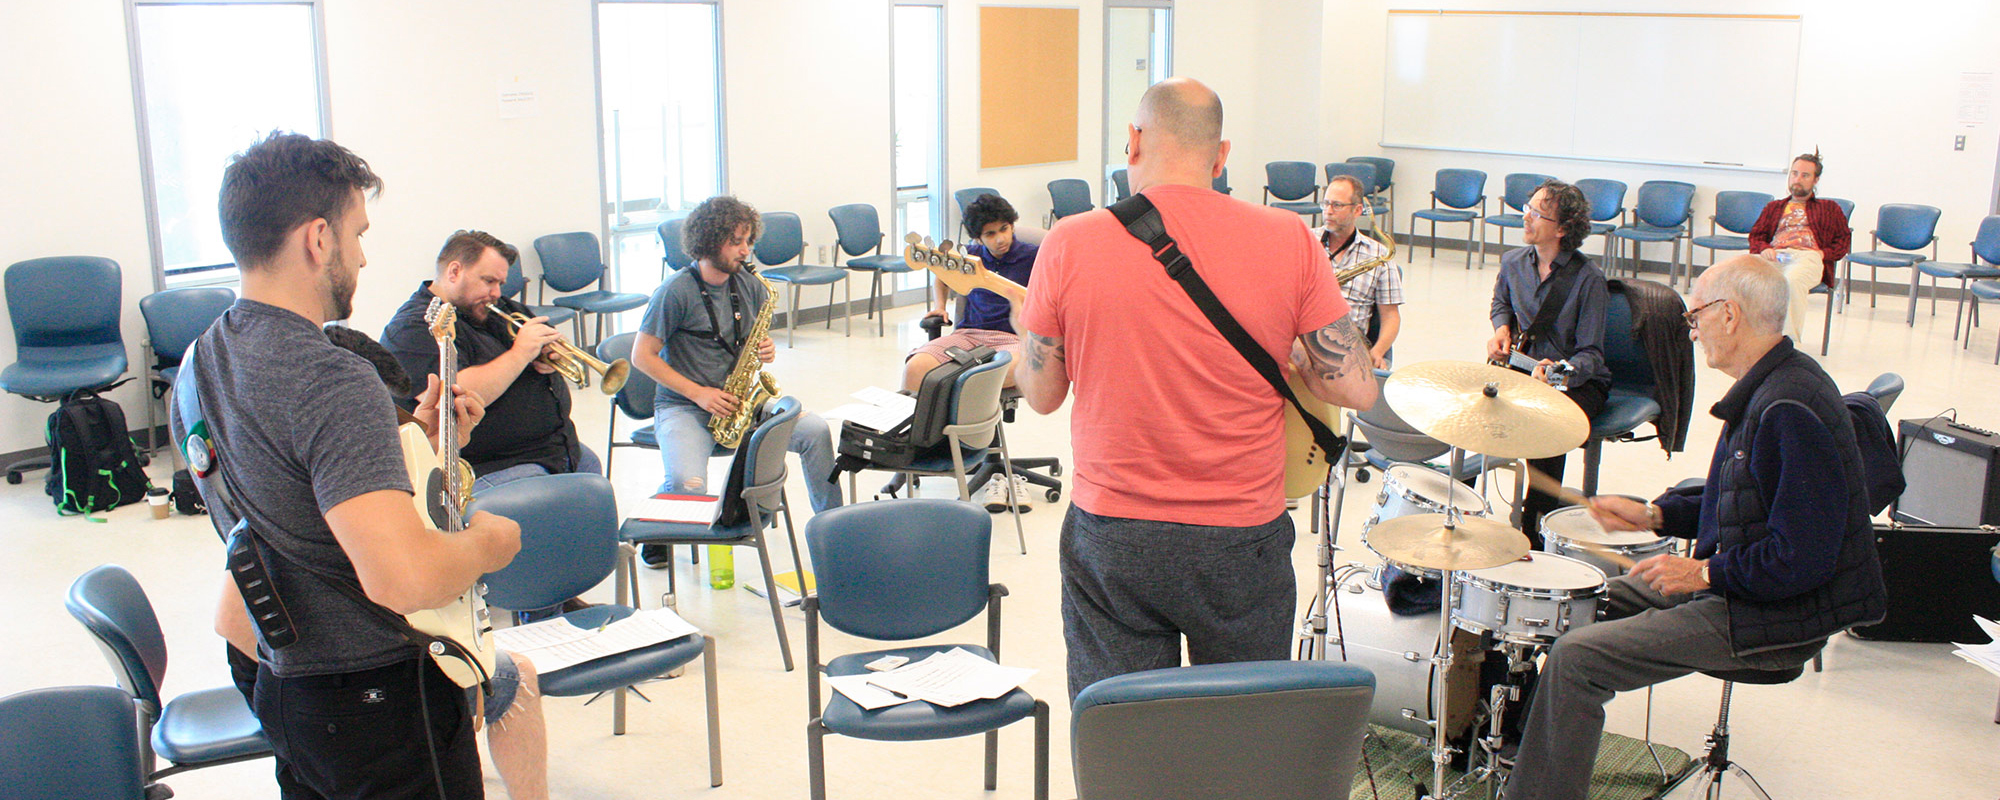 Creative Music Workshop students in Halifax NS NSCC